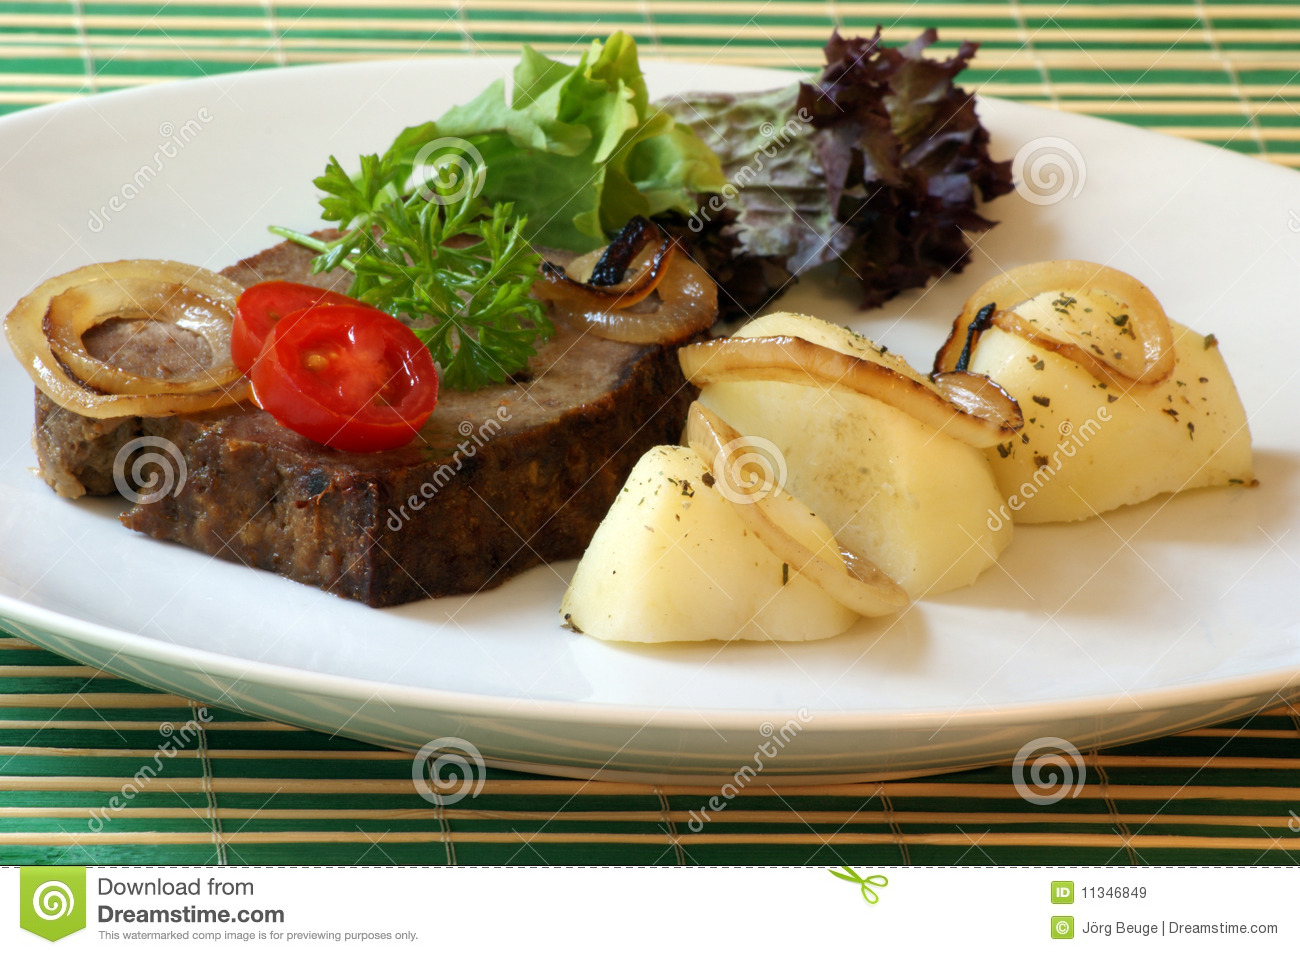 Sliced Meat Loaf With Vegetable On A Plate Royalty Free Stock Images